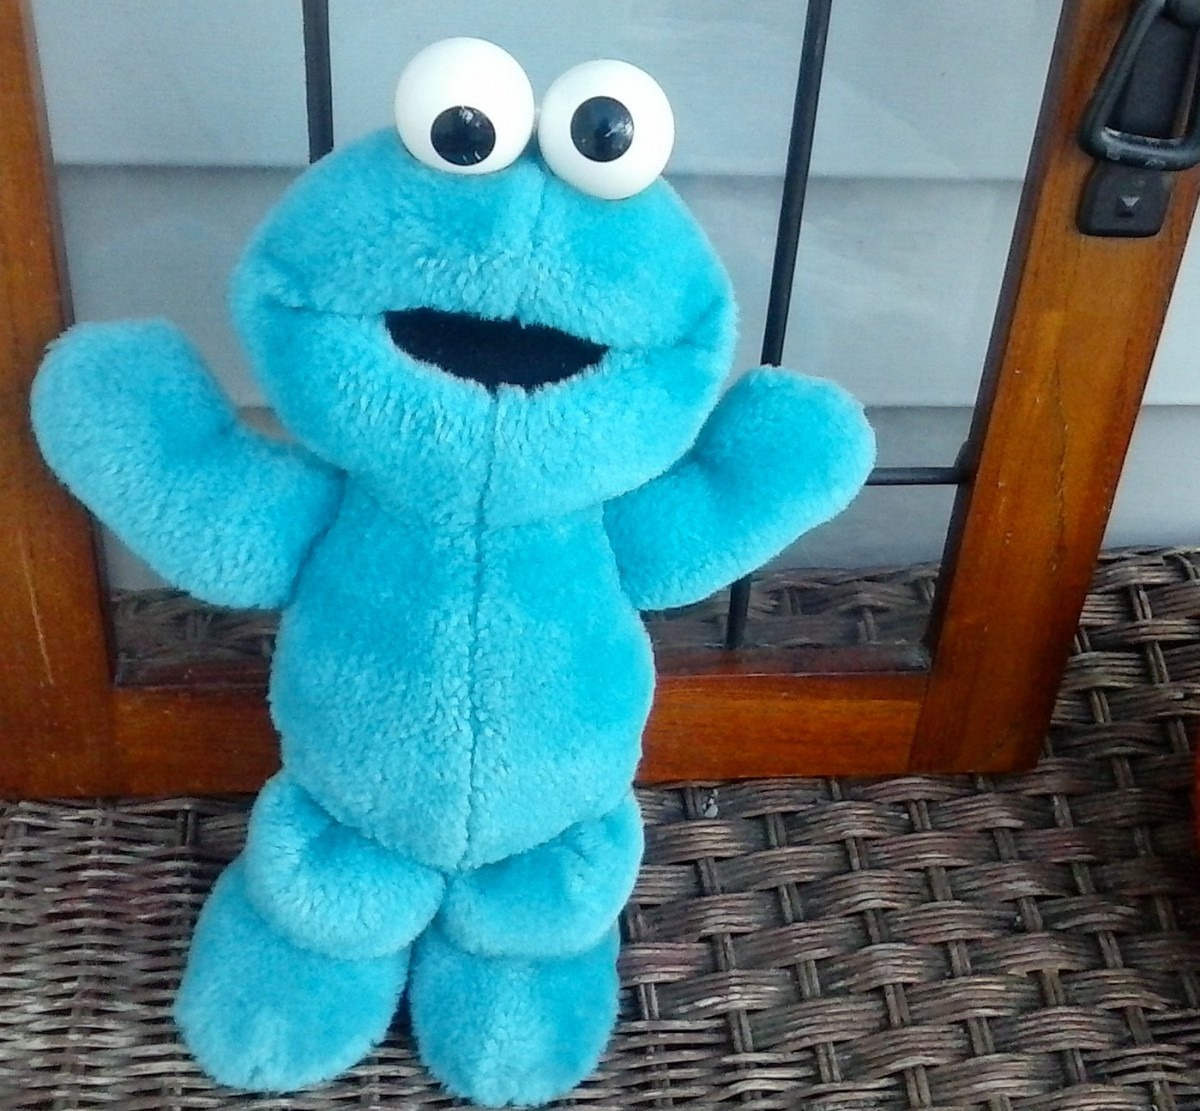 Vintage Tickle Me Cookie Monster 12 Talks Laughs And